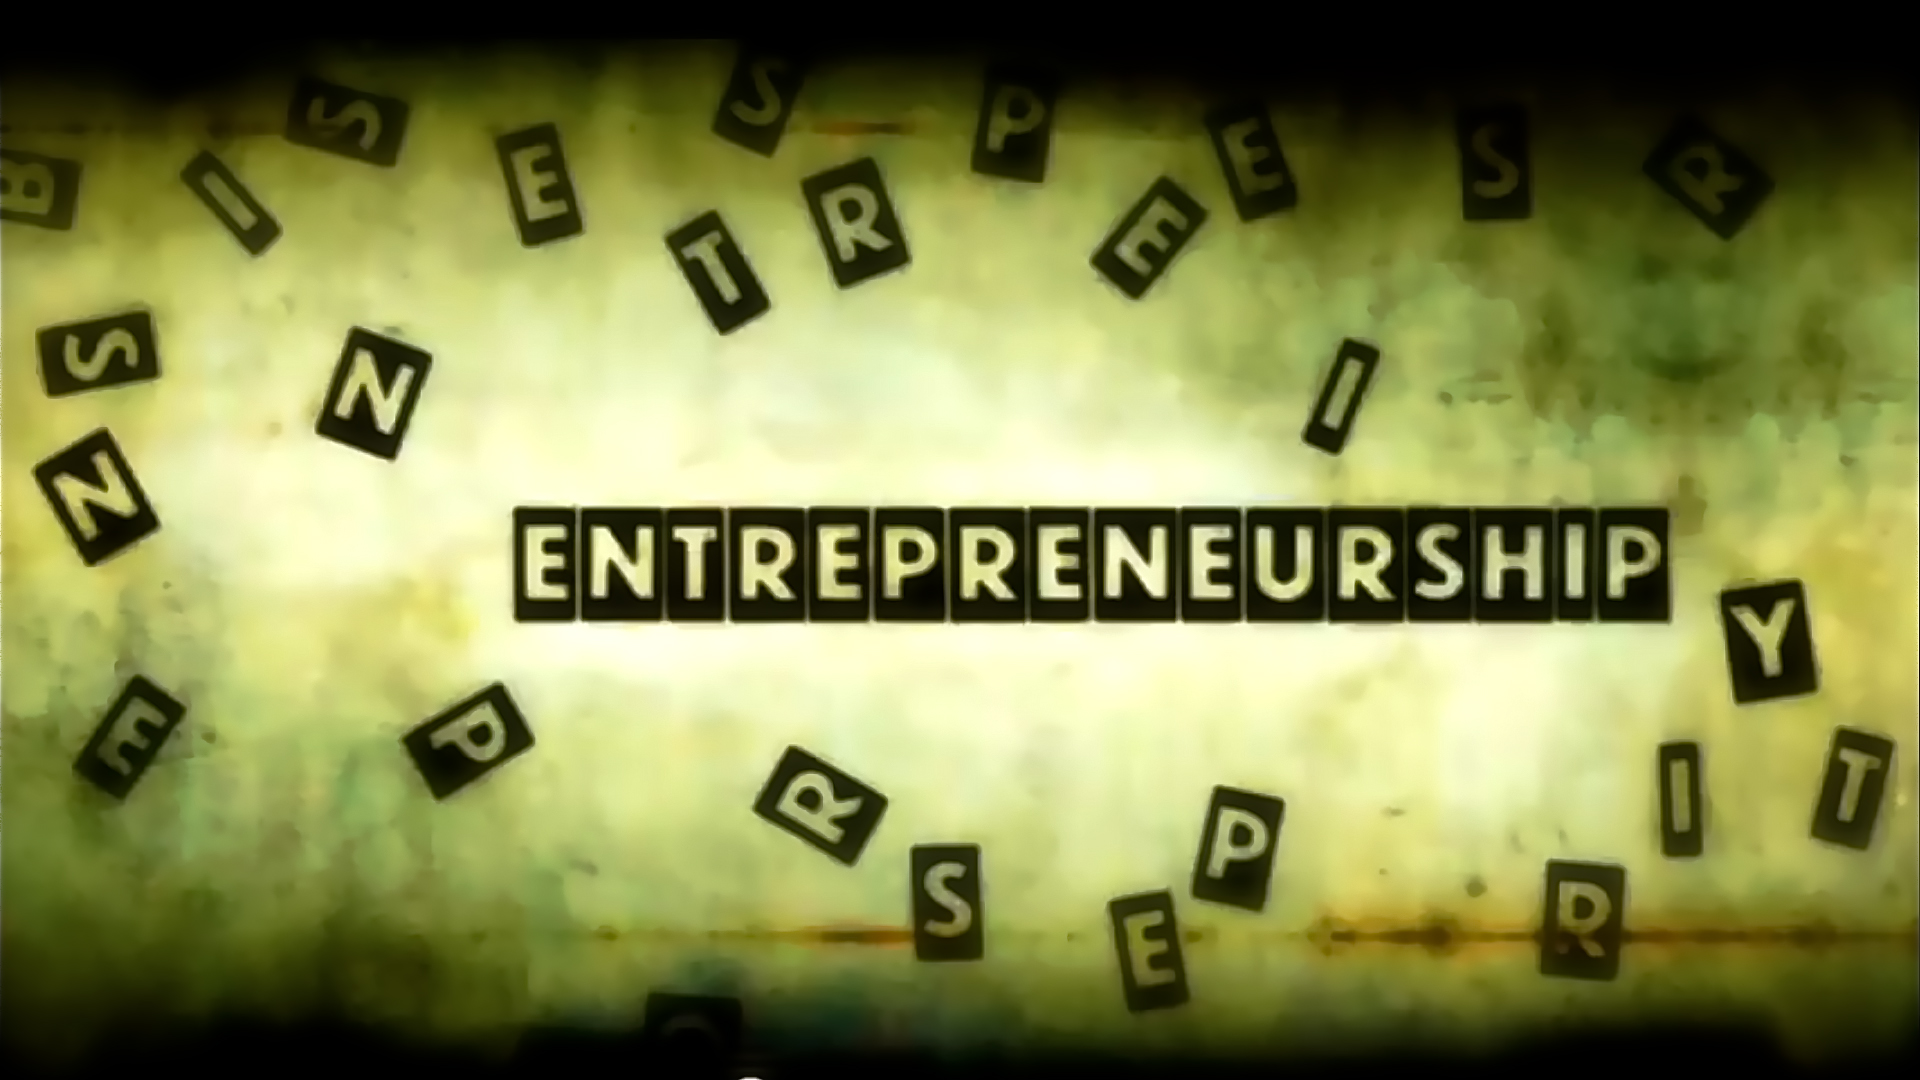 Entrepreneurship - The Art and Science Of Entrepreneurship, Leadership and Management